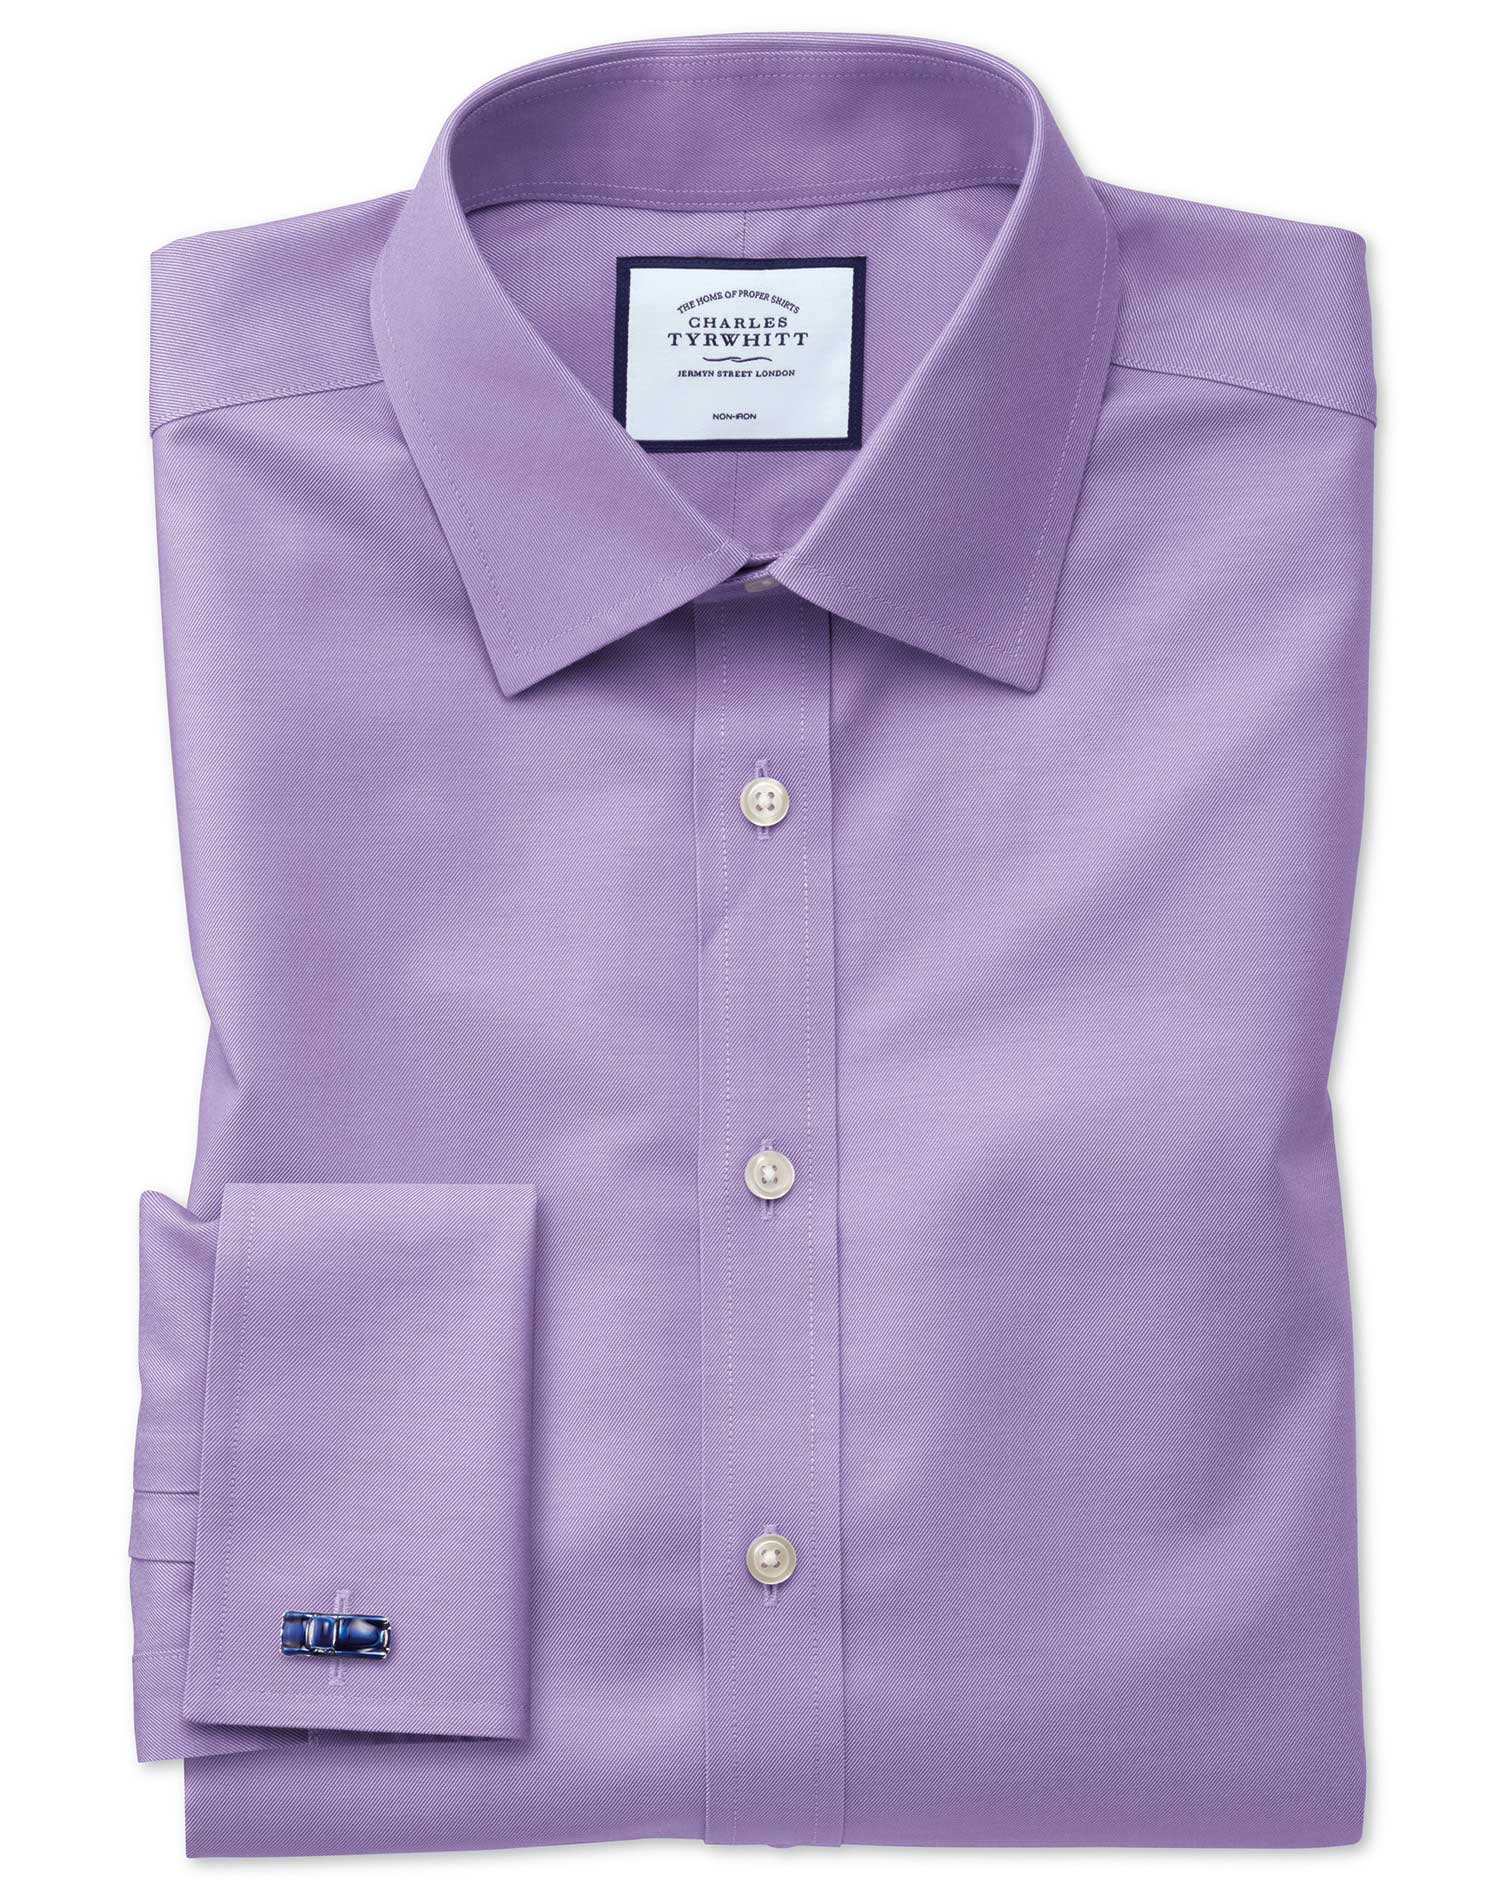 Lilac Non-Iron Twill Classic Fit Single Cuff Size 18/36 by Charles Tyrwhitt